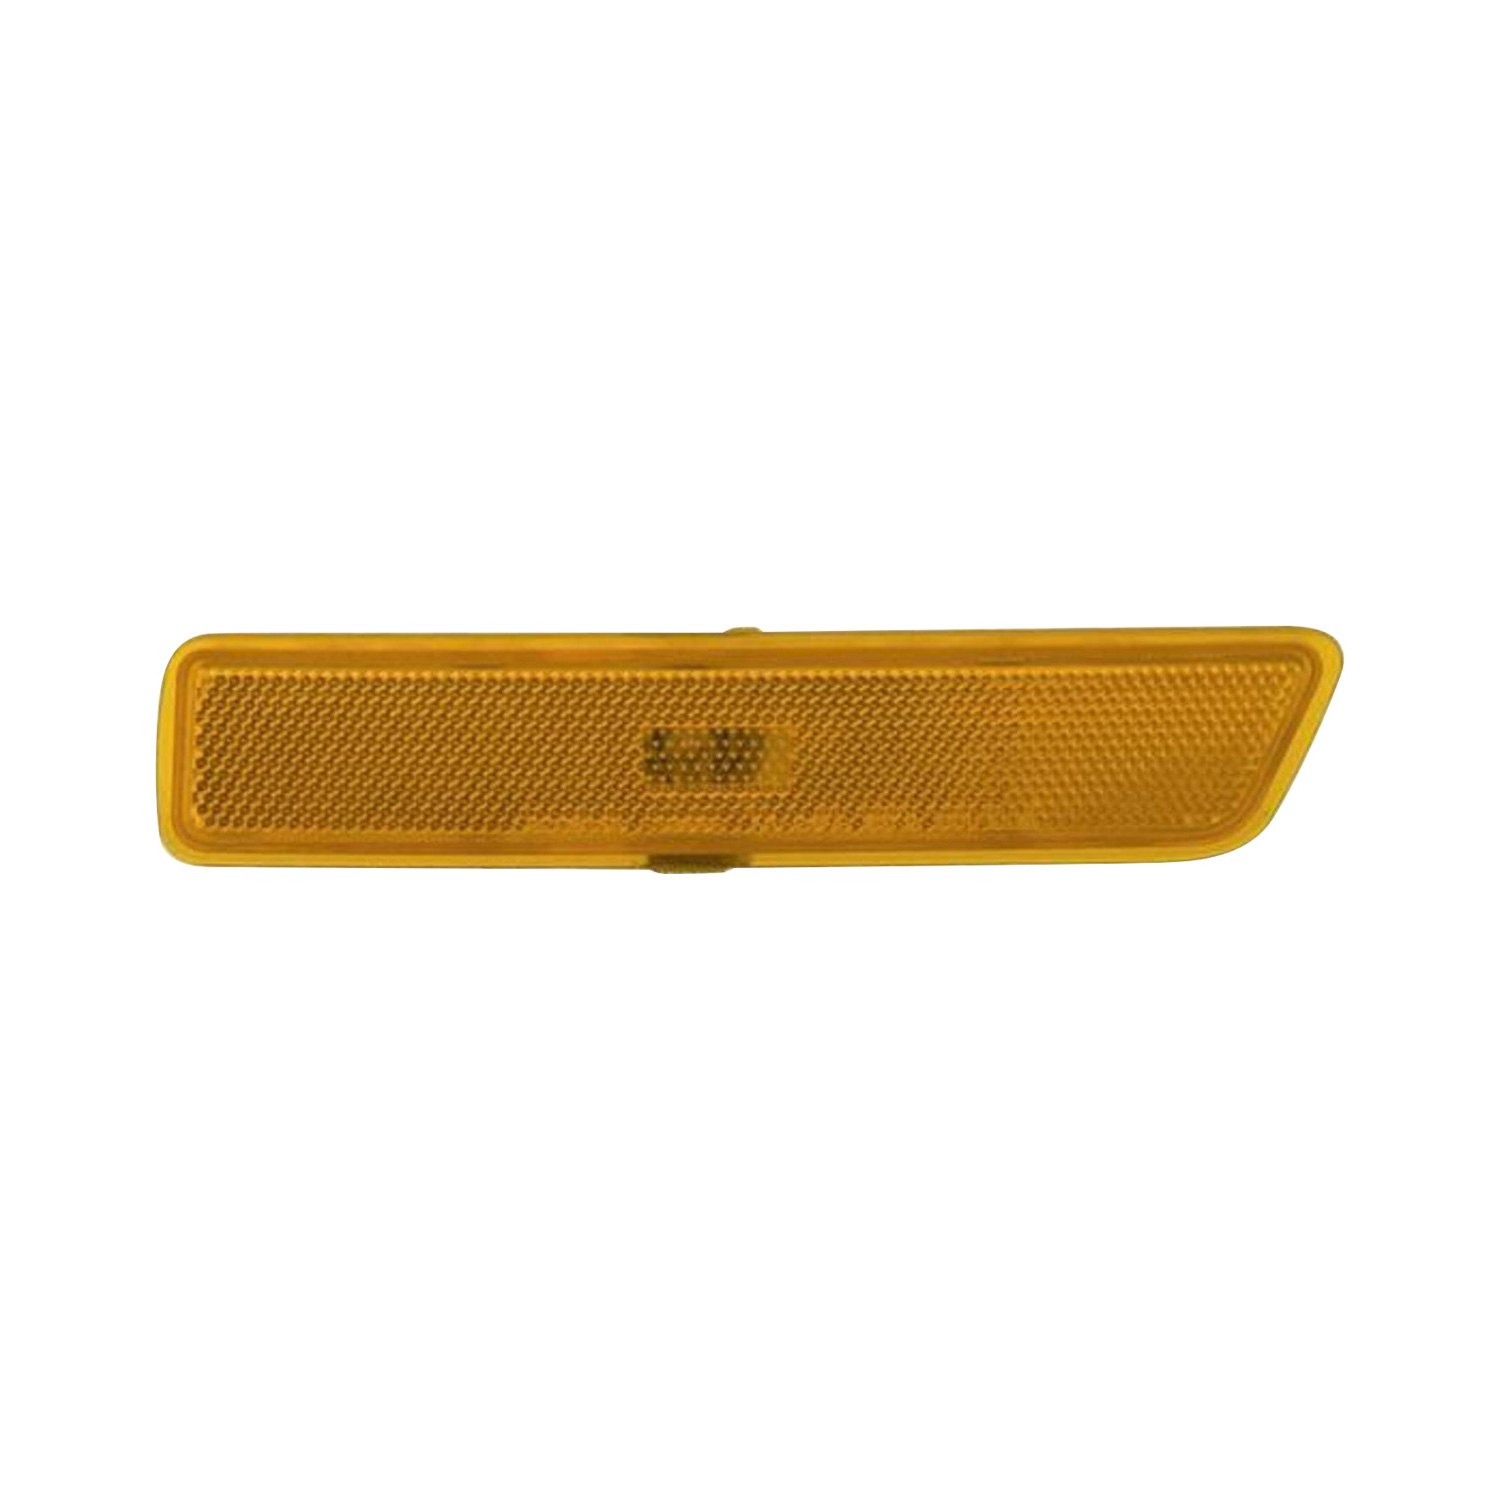 TYC 18 5936 00 1 Driver Side NSF Certified Replacement Side Marker Light